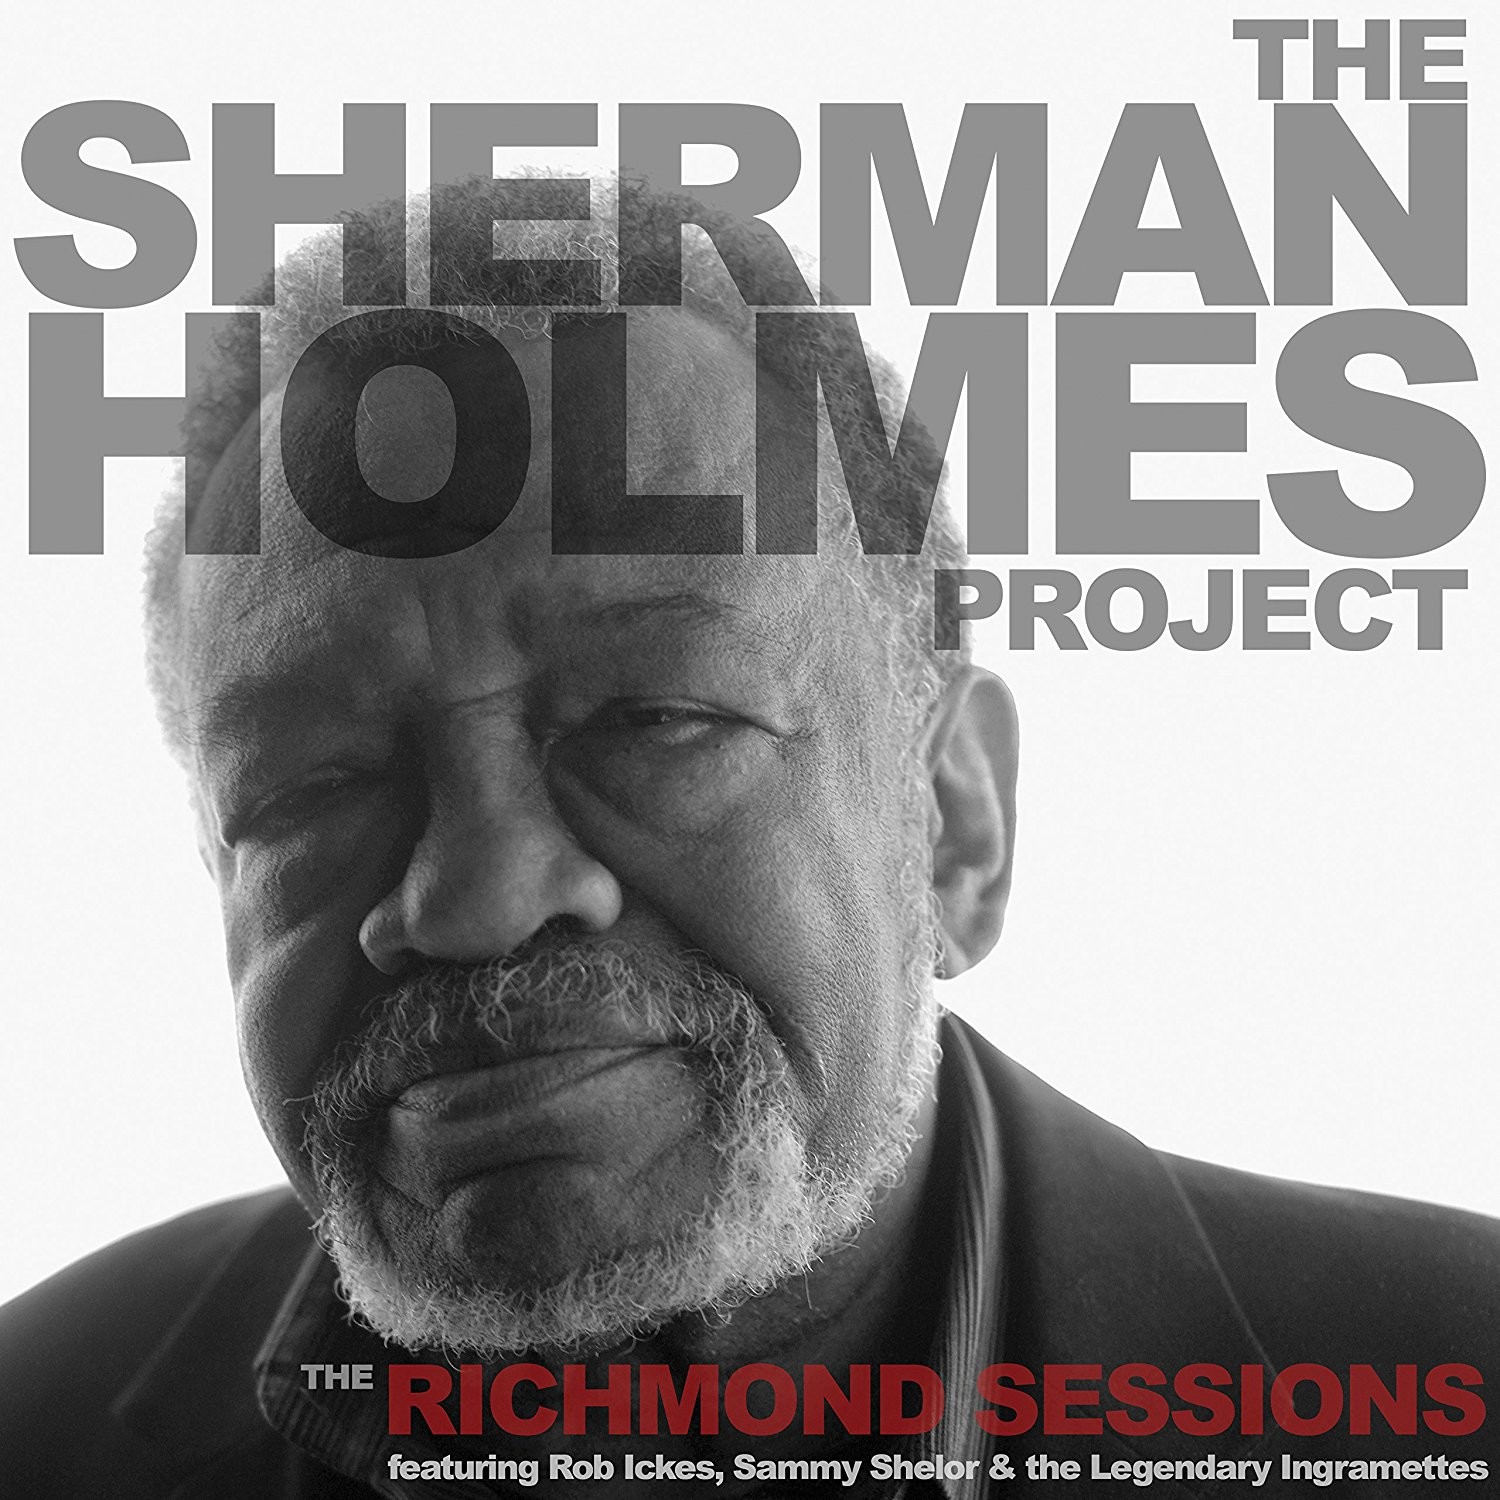 The Sherman Holmes Project - The Richmond Sessions